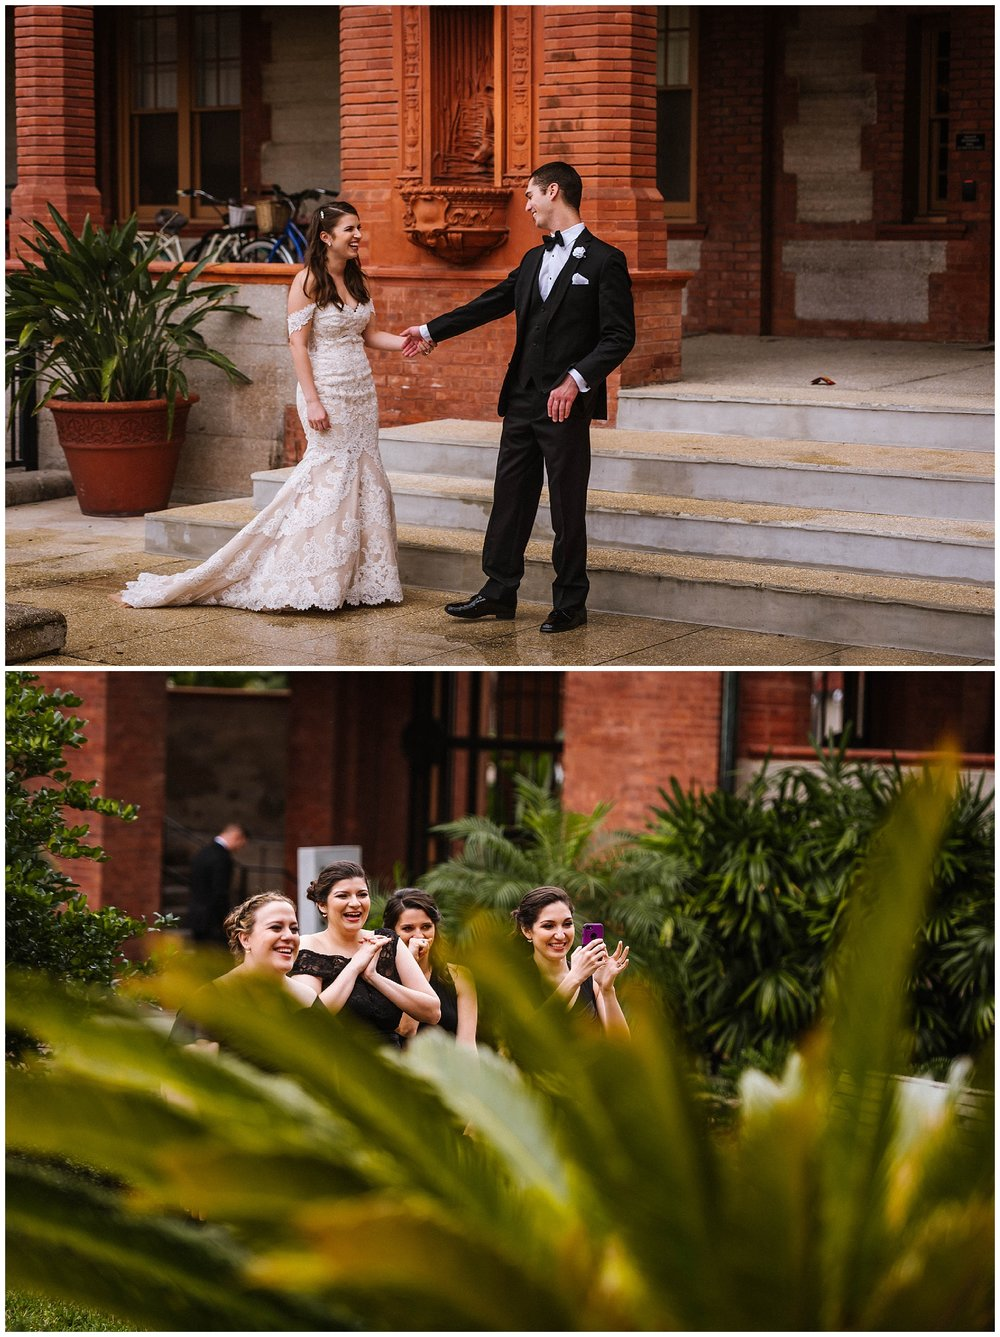 st-augustine-wedding-photographer-rainy-lightner-museum-flagler-casa-monica_0009.jpg